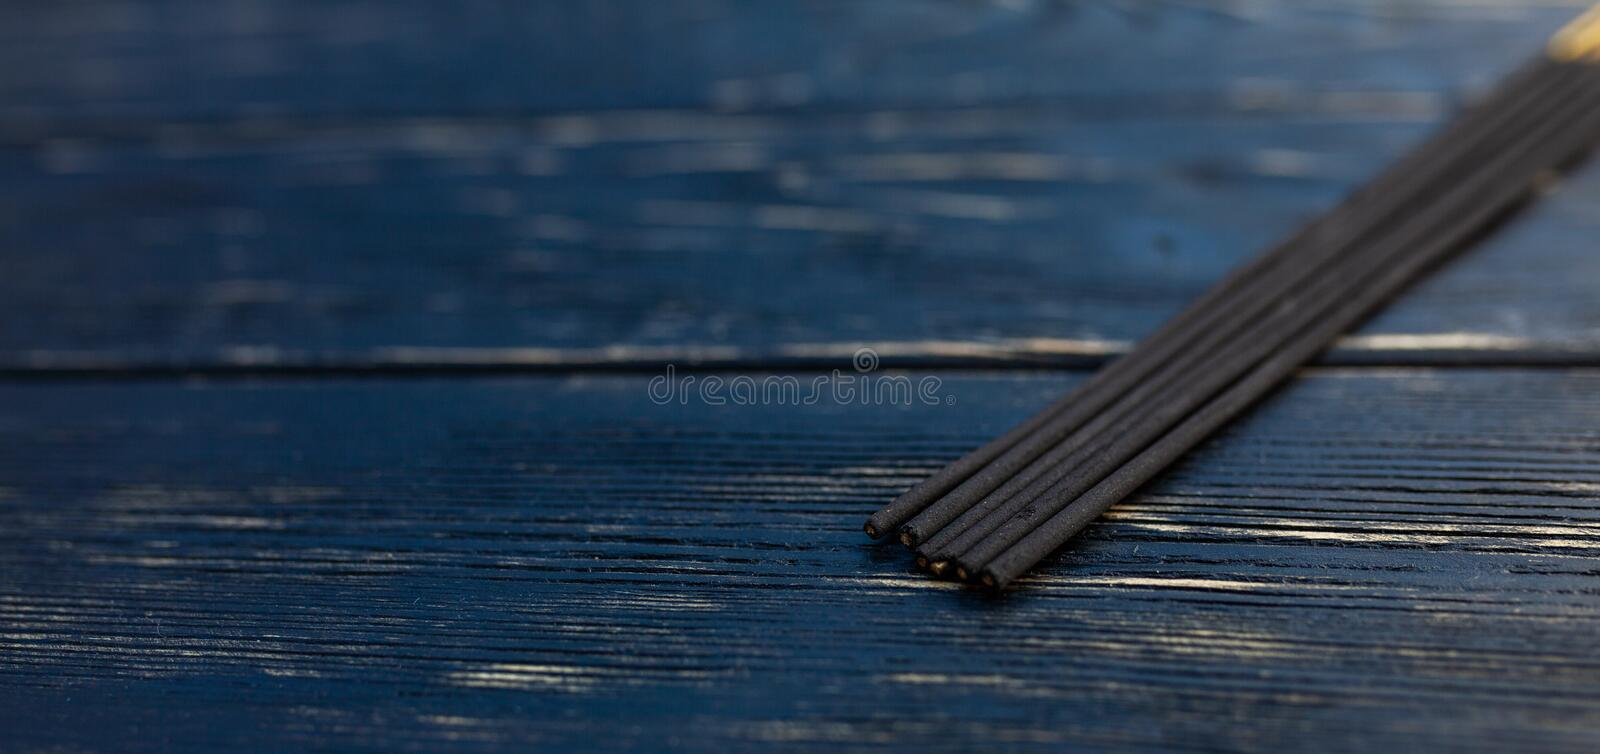 Sandalwood sticks on a black wooden table. Traditional Asian culture. Aromatherapy. With free space for text royalty free stock photo